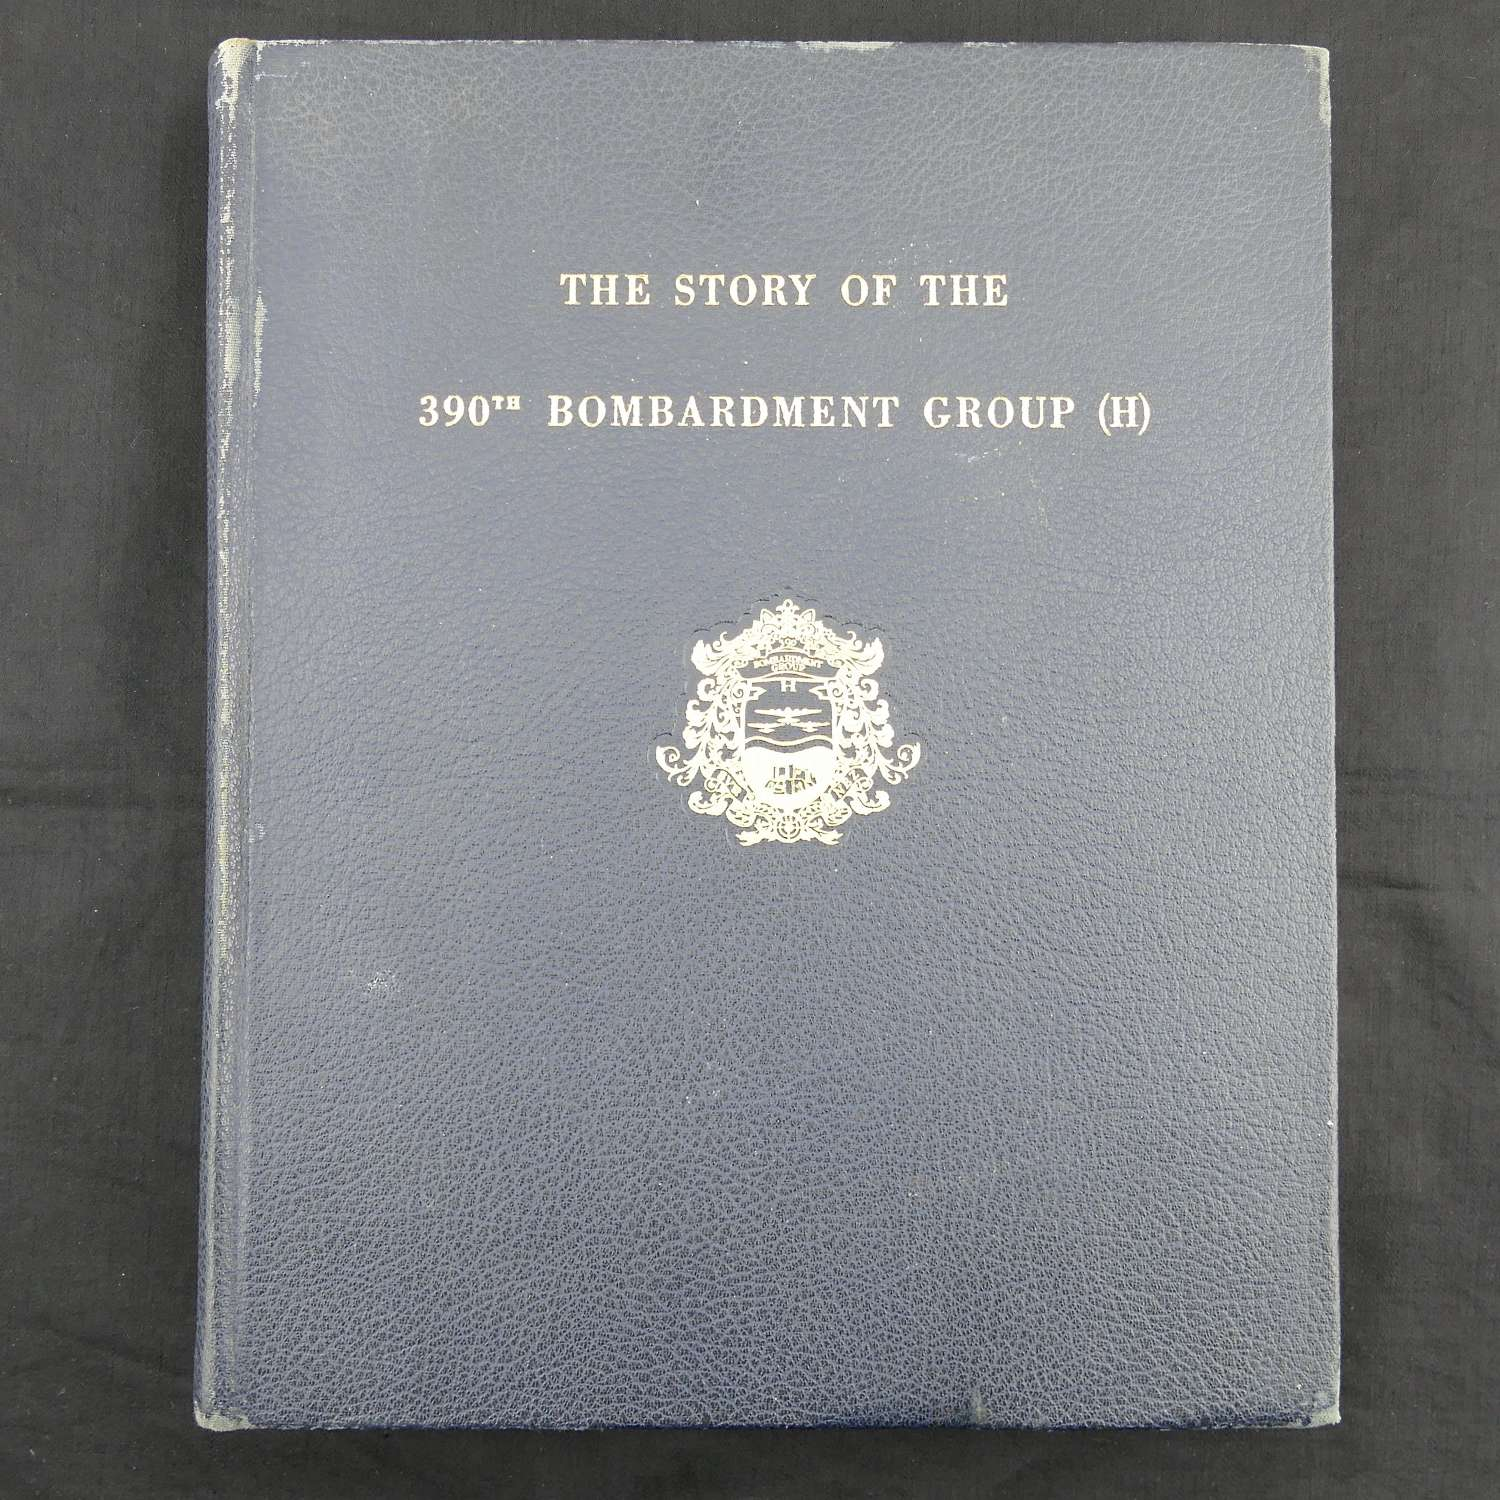 The Story Of The 390th Bombardment Group (H) - Rare original copy